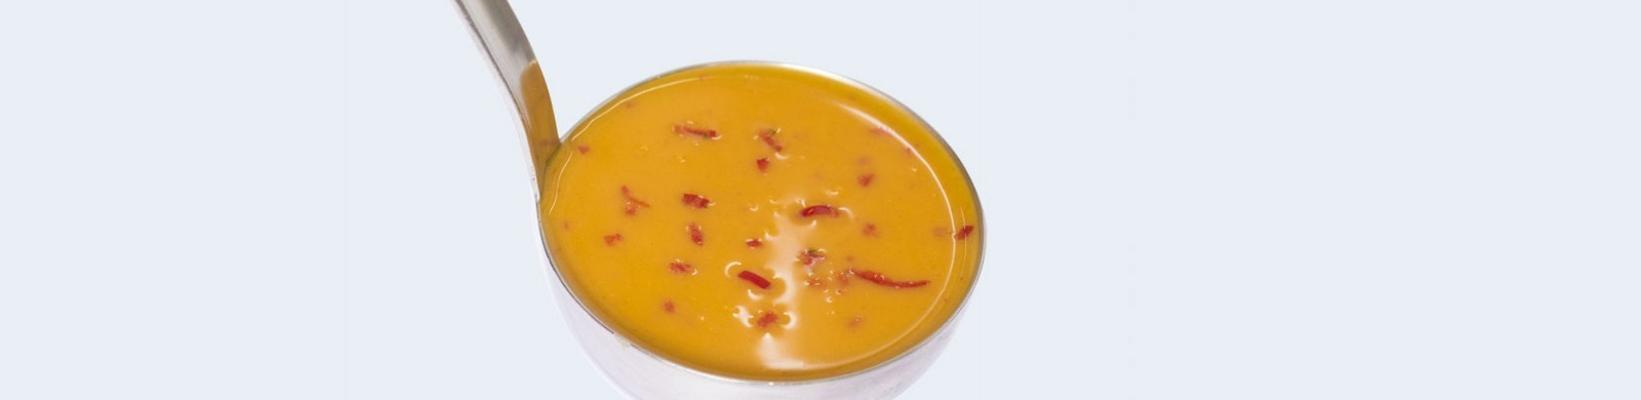 pumpkin soup with anise sprig